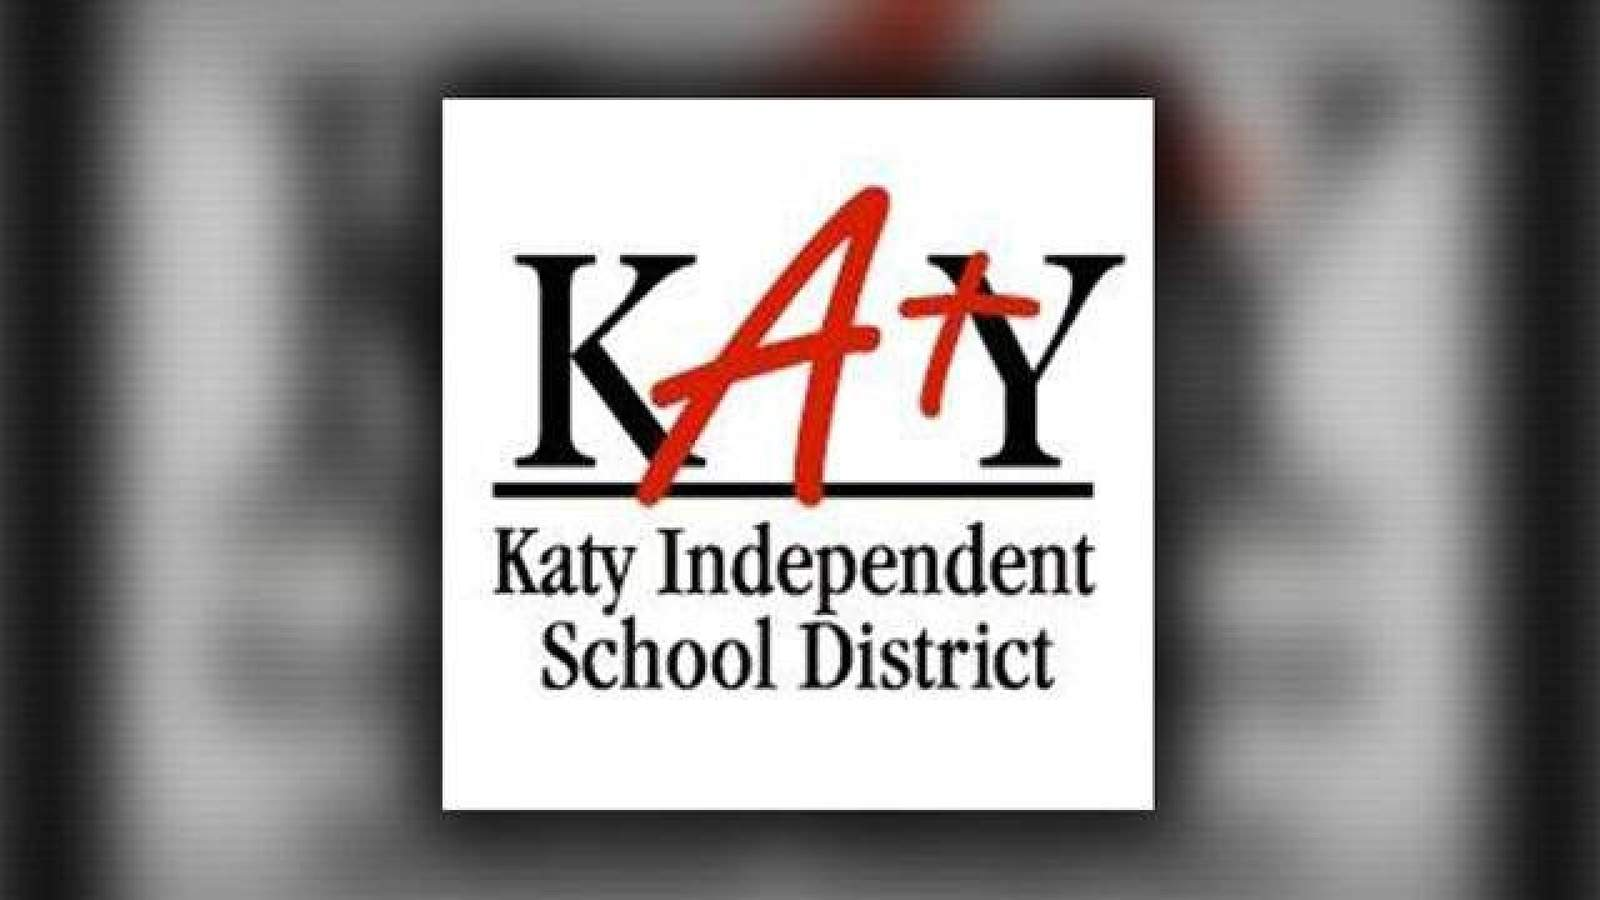 Katy Isd To Open Rapid Covid 19 Testing Site For Employees To Help Mitigate Spread Of Virus